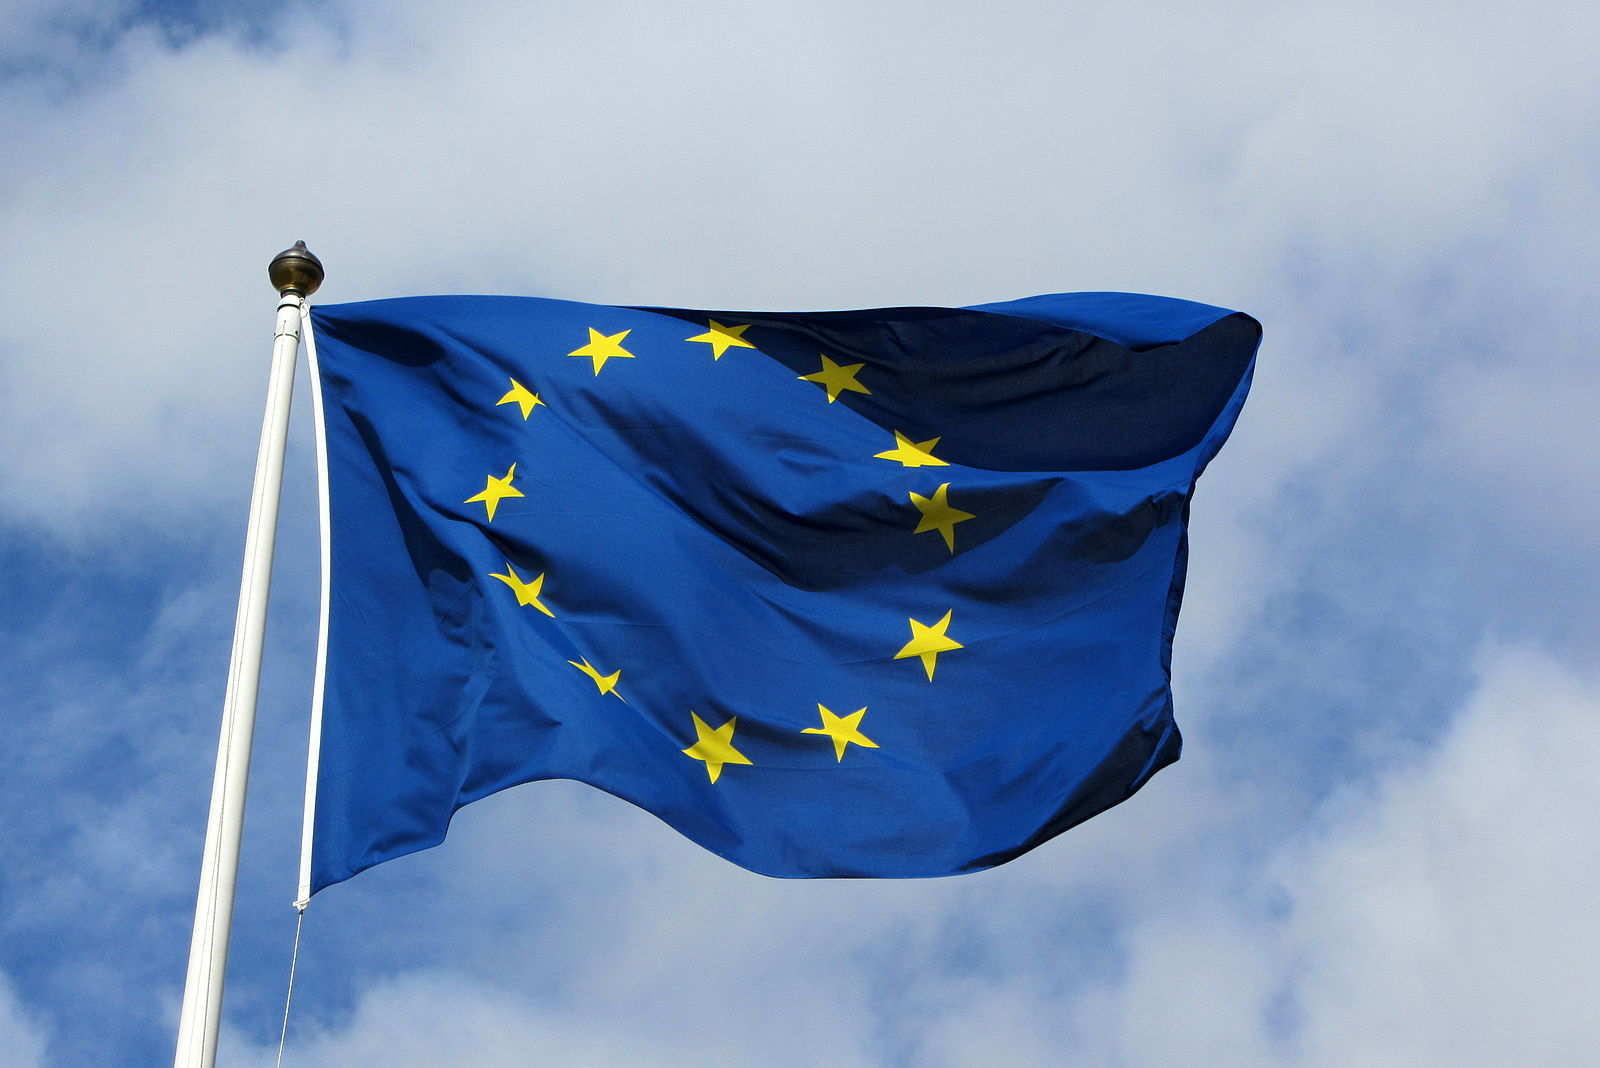 European_flag_in_Karlskrona_2011.jpg